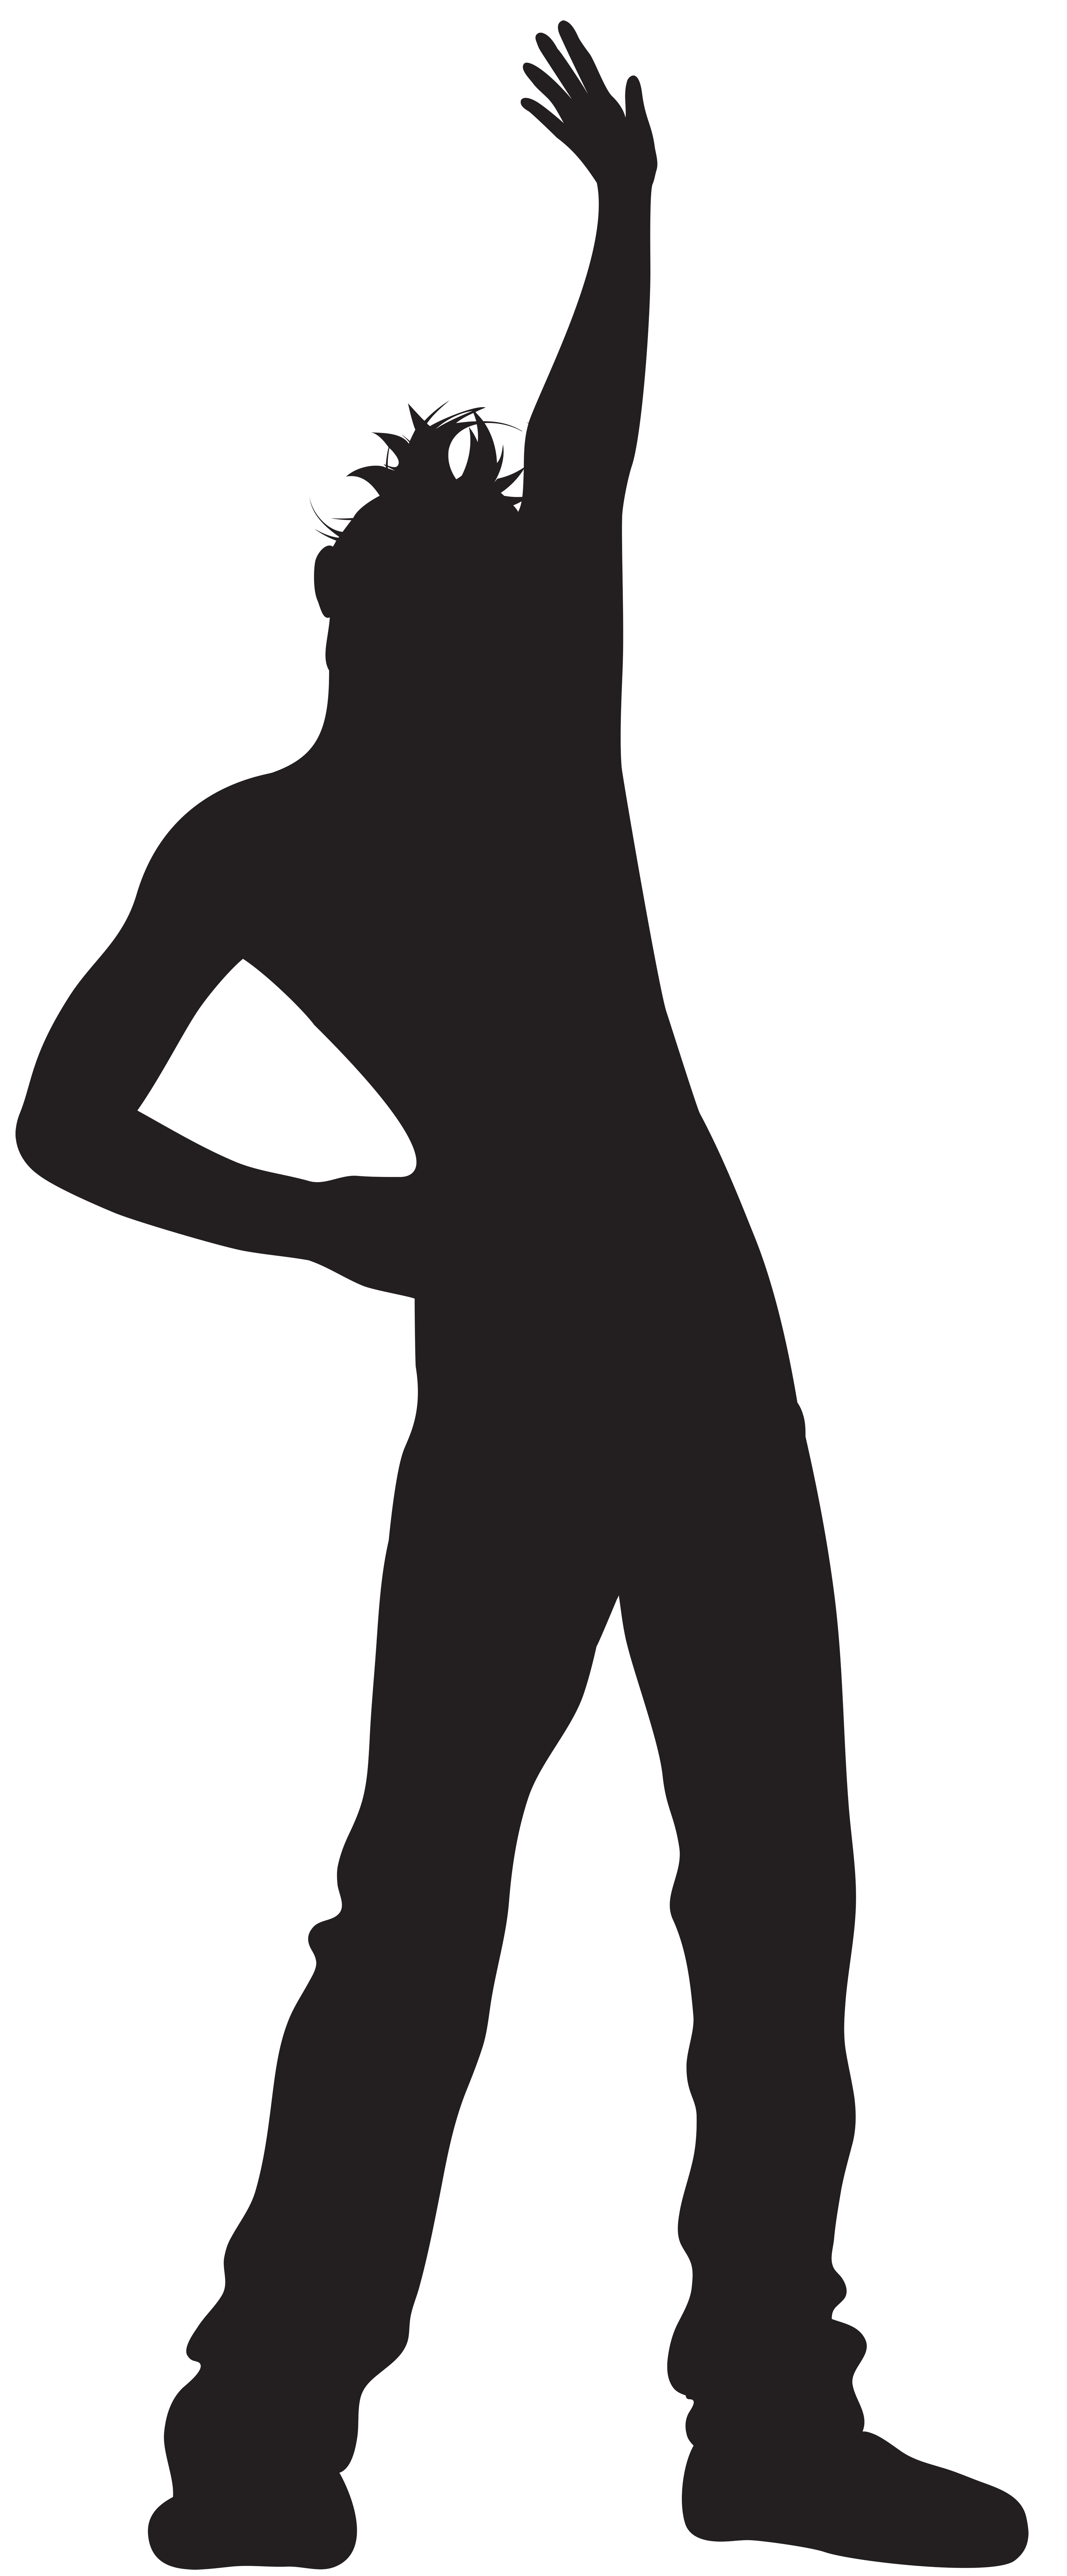 Man silhouette png transparent. Dancing clipart shadow graphic freeuse download